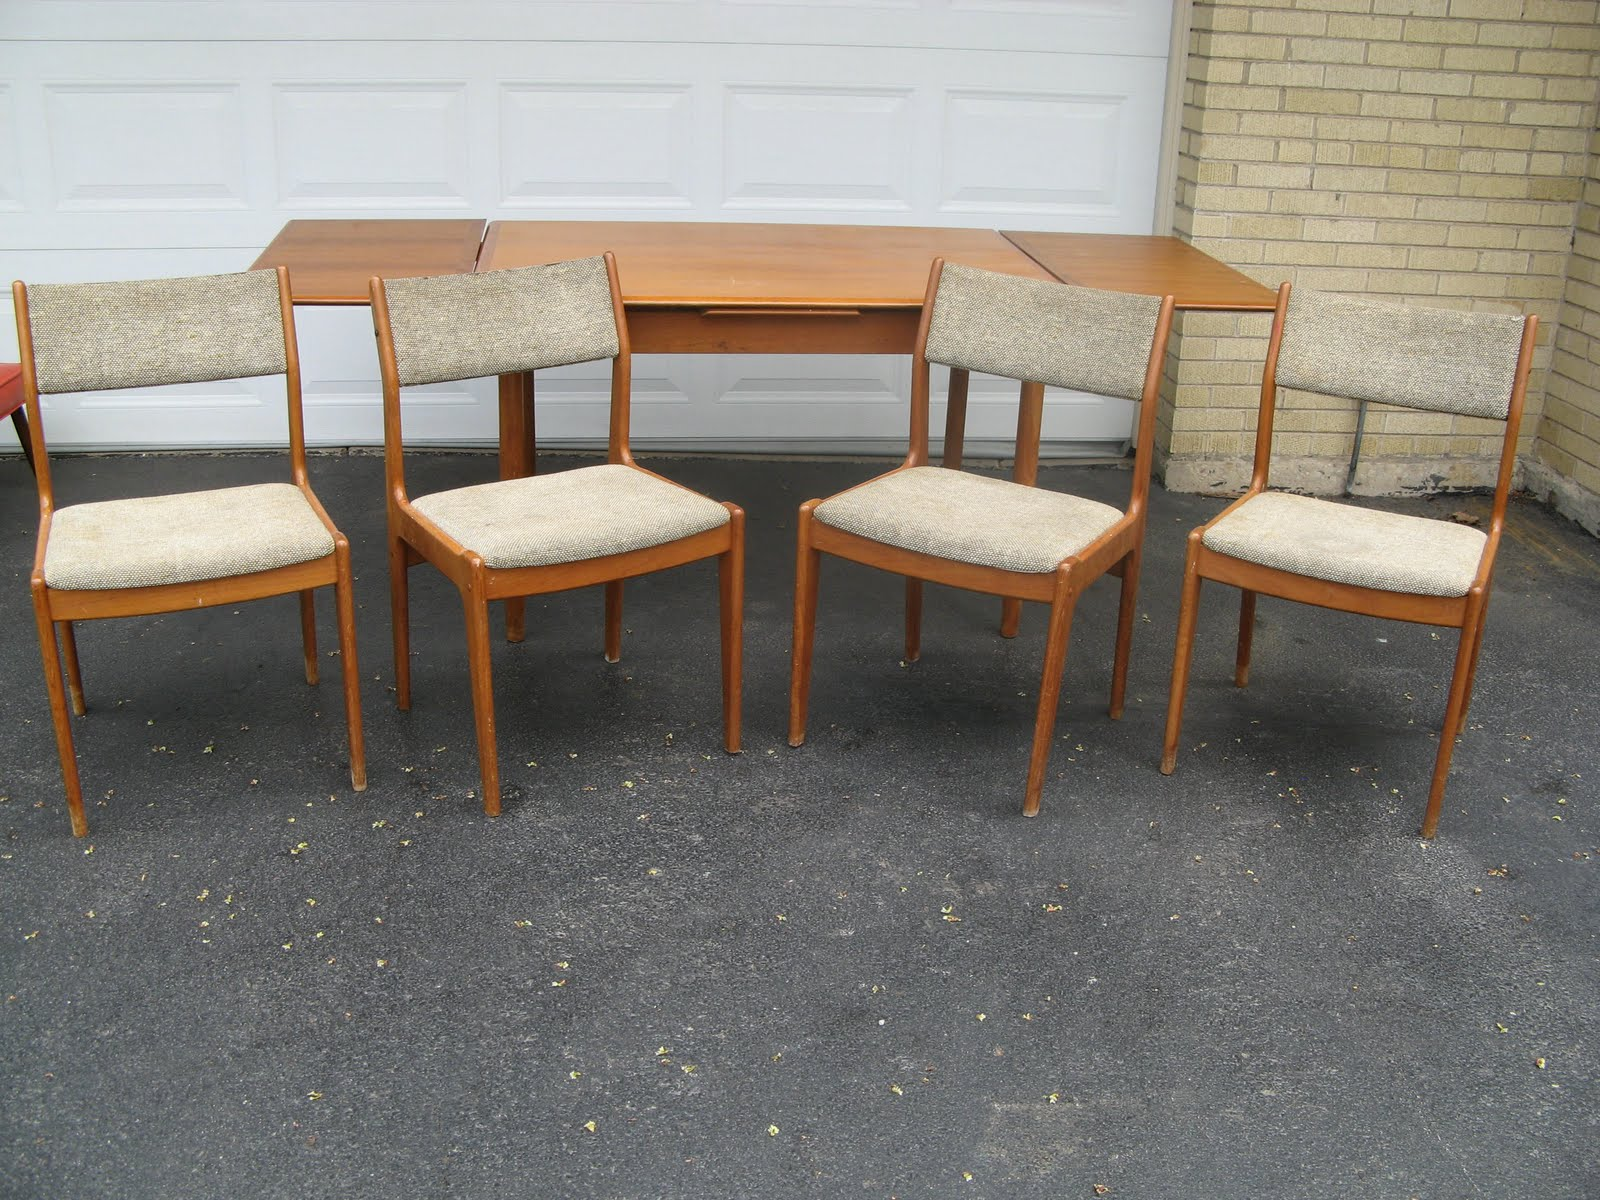 4 Danish Modern Teak Chairs Come With The Table Above All Need To Be Refinished And They New Upholstery Again Is Easy Refinish